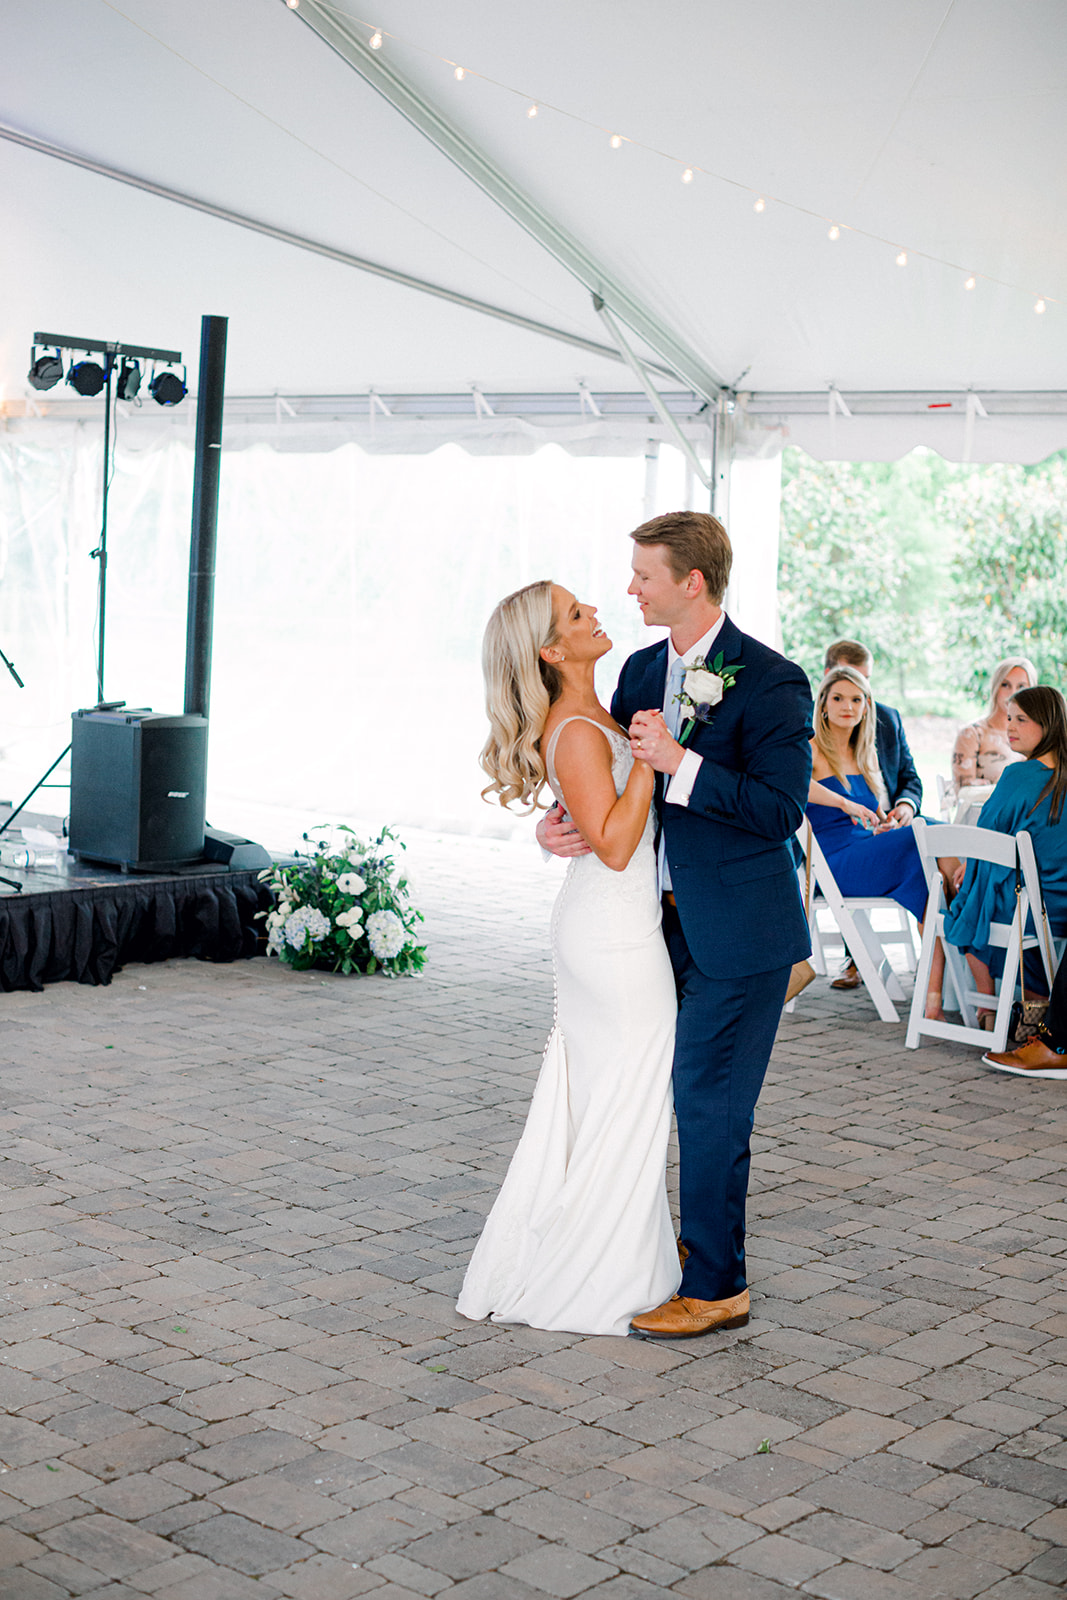 Bride and groom first dance at semi outdoor wedding reception